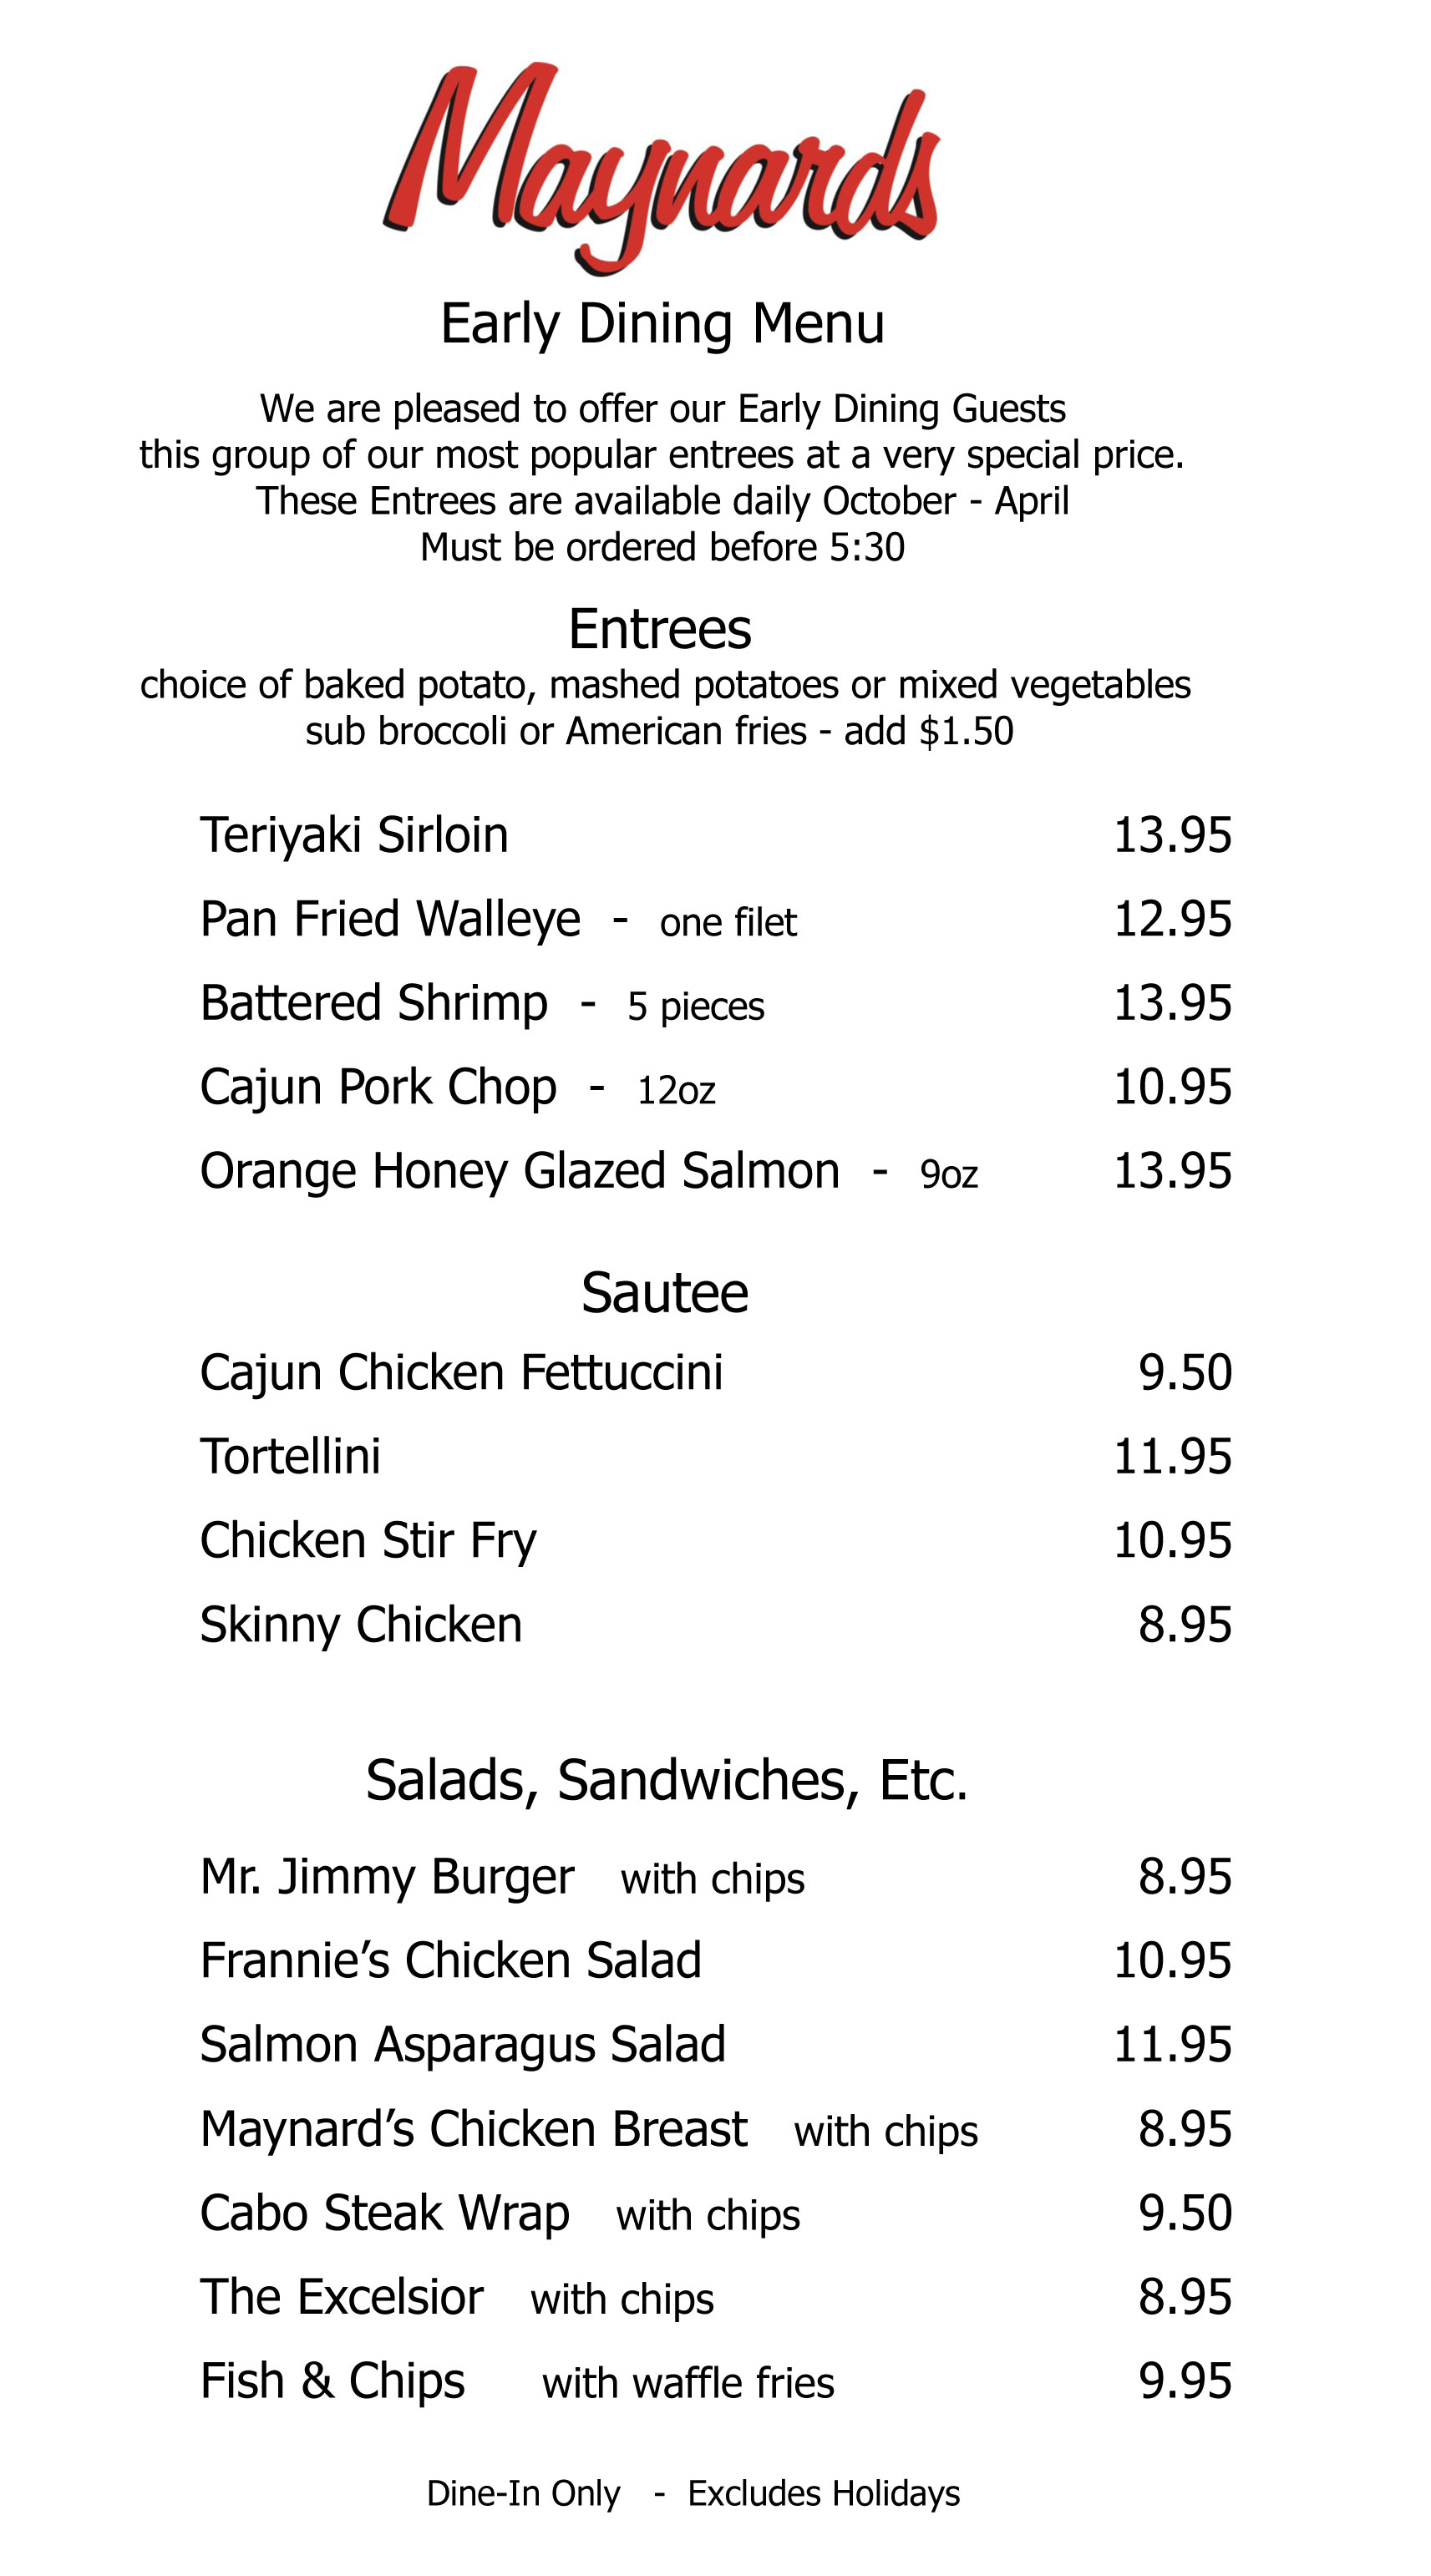 Early-Dining-Menu